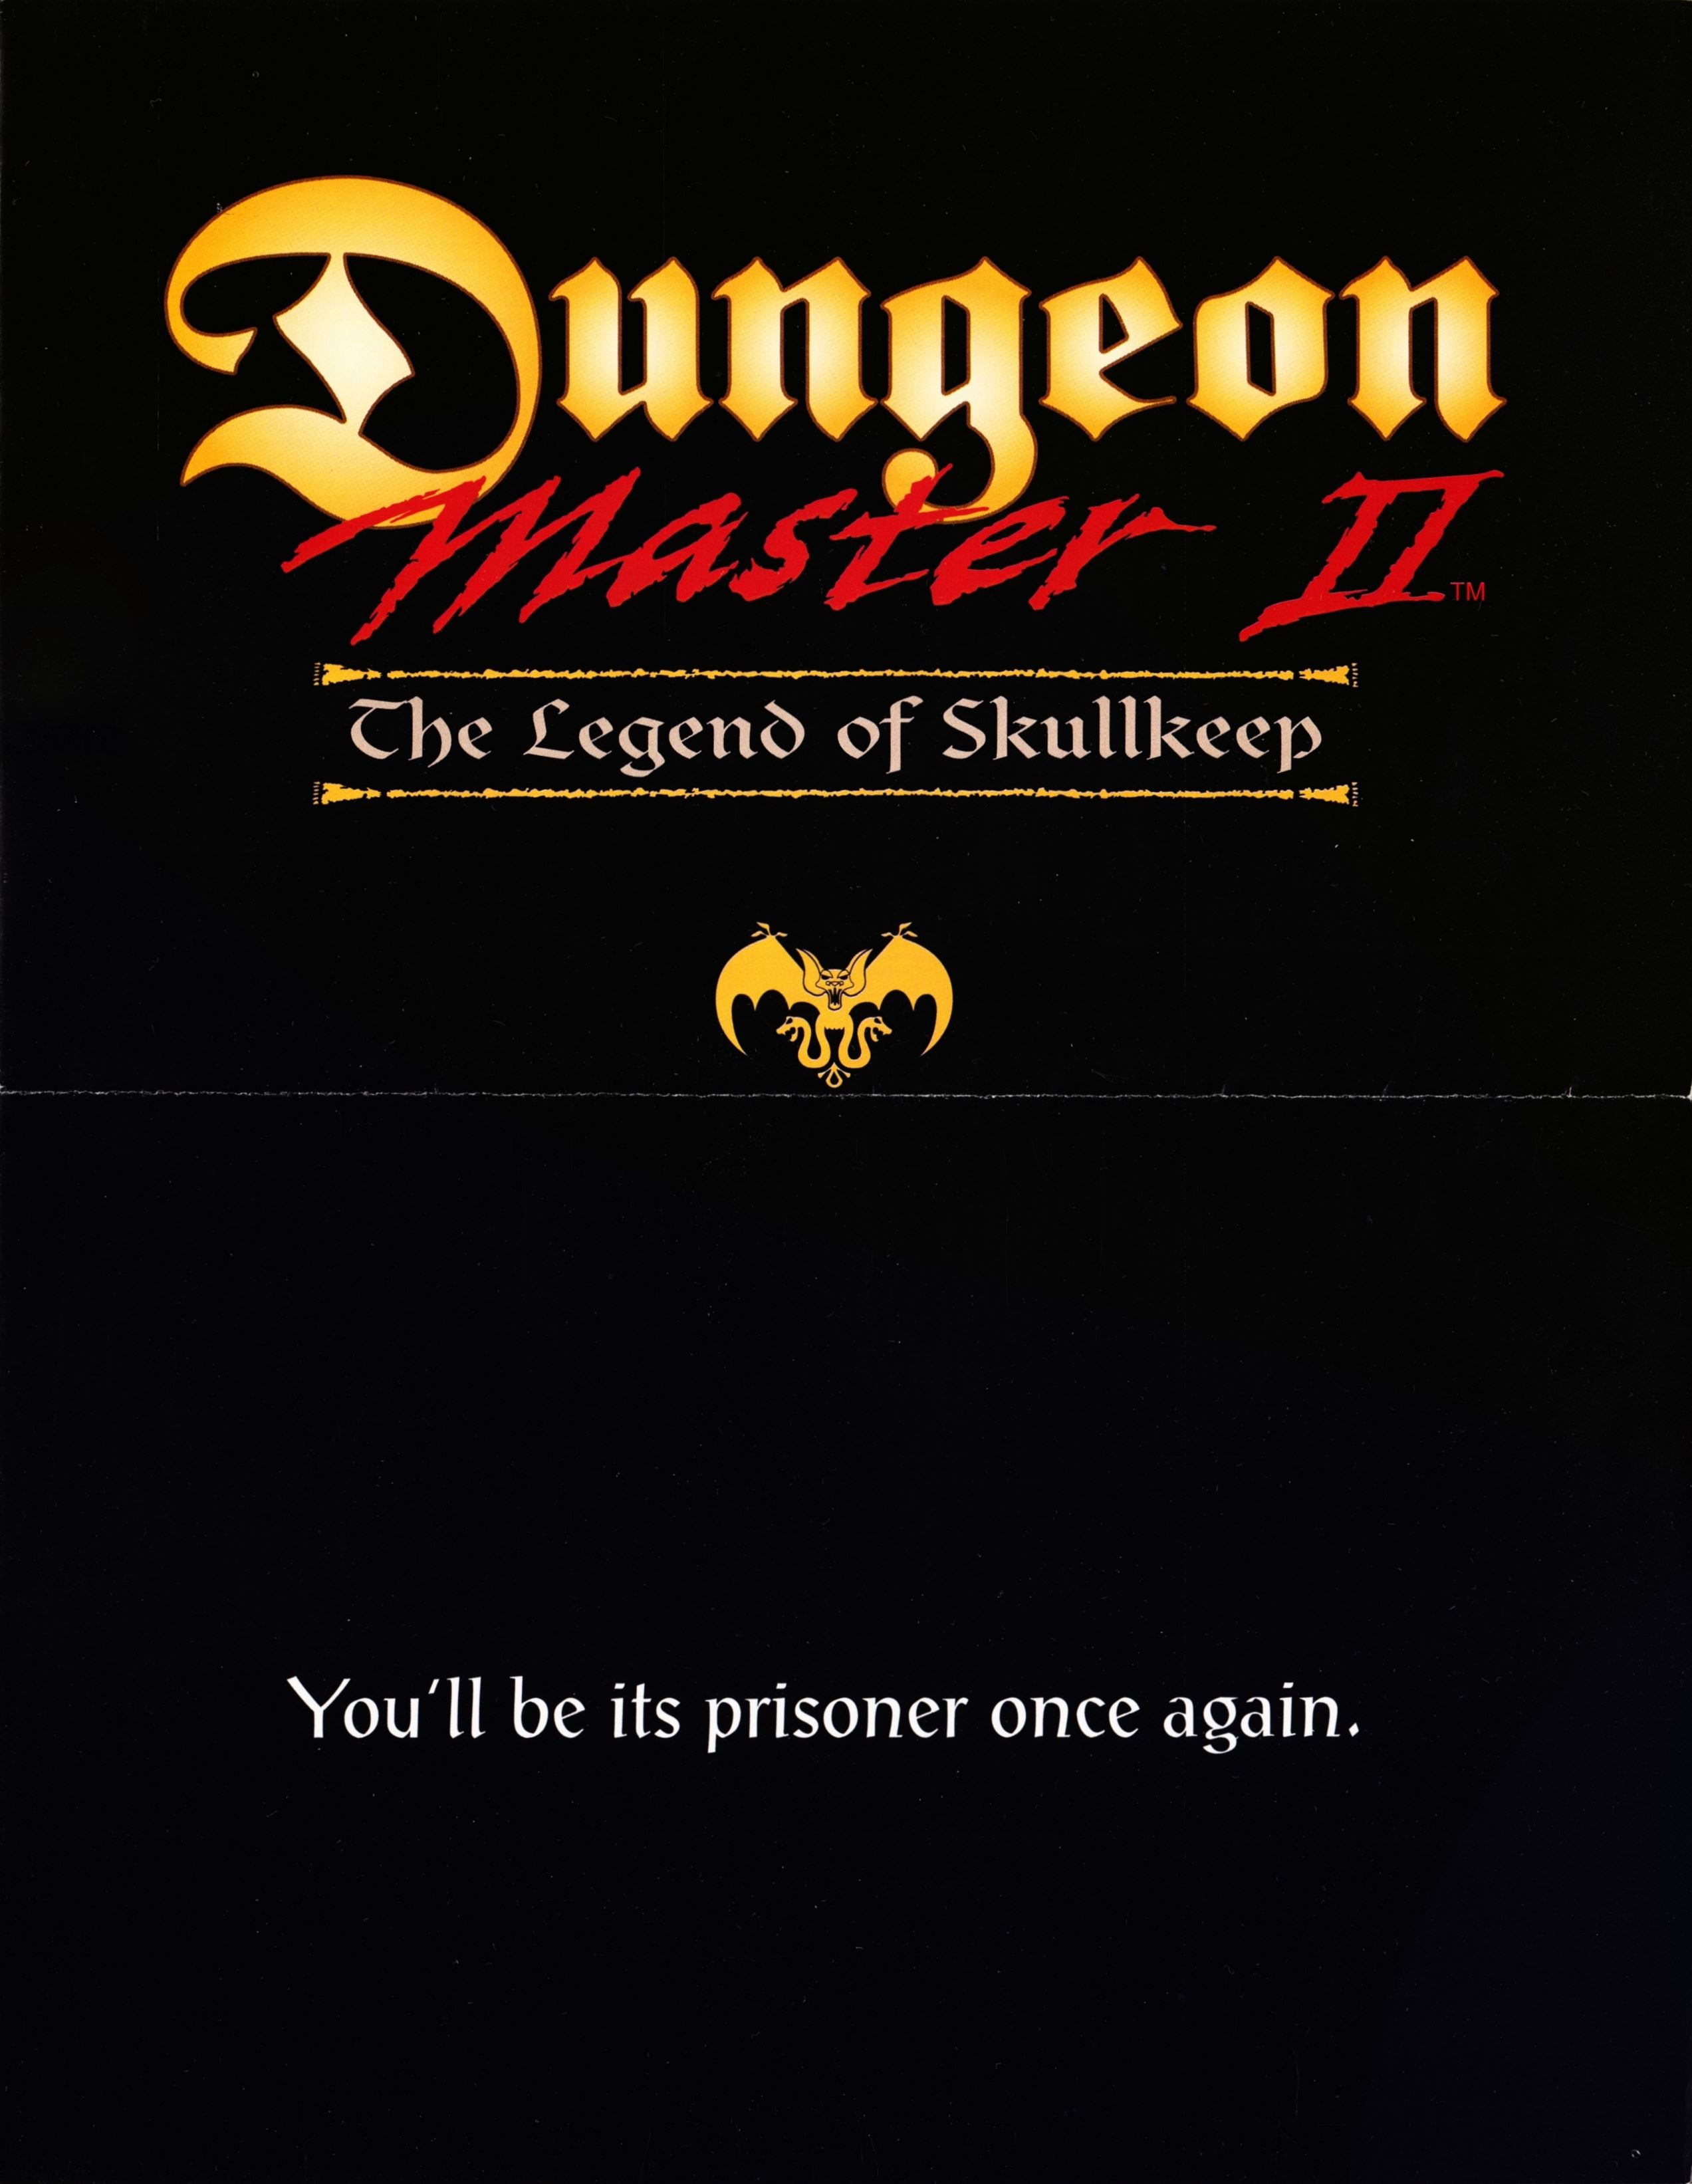 Retailer Kit - Dungeon Master II - US - PC Flyer - Page 001 - Scan